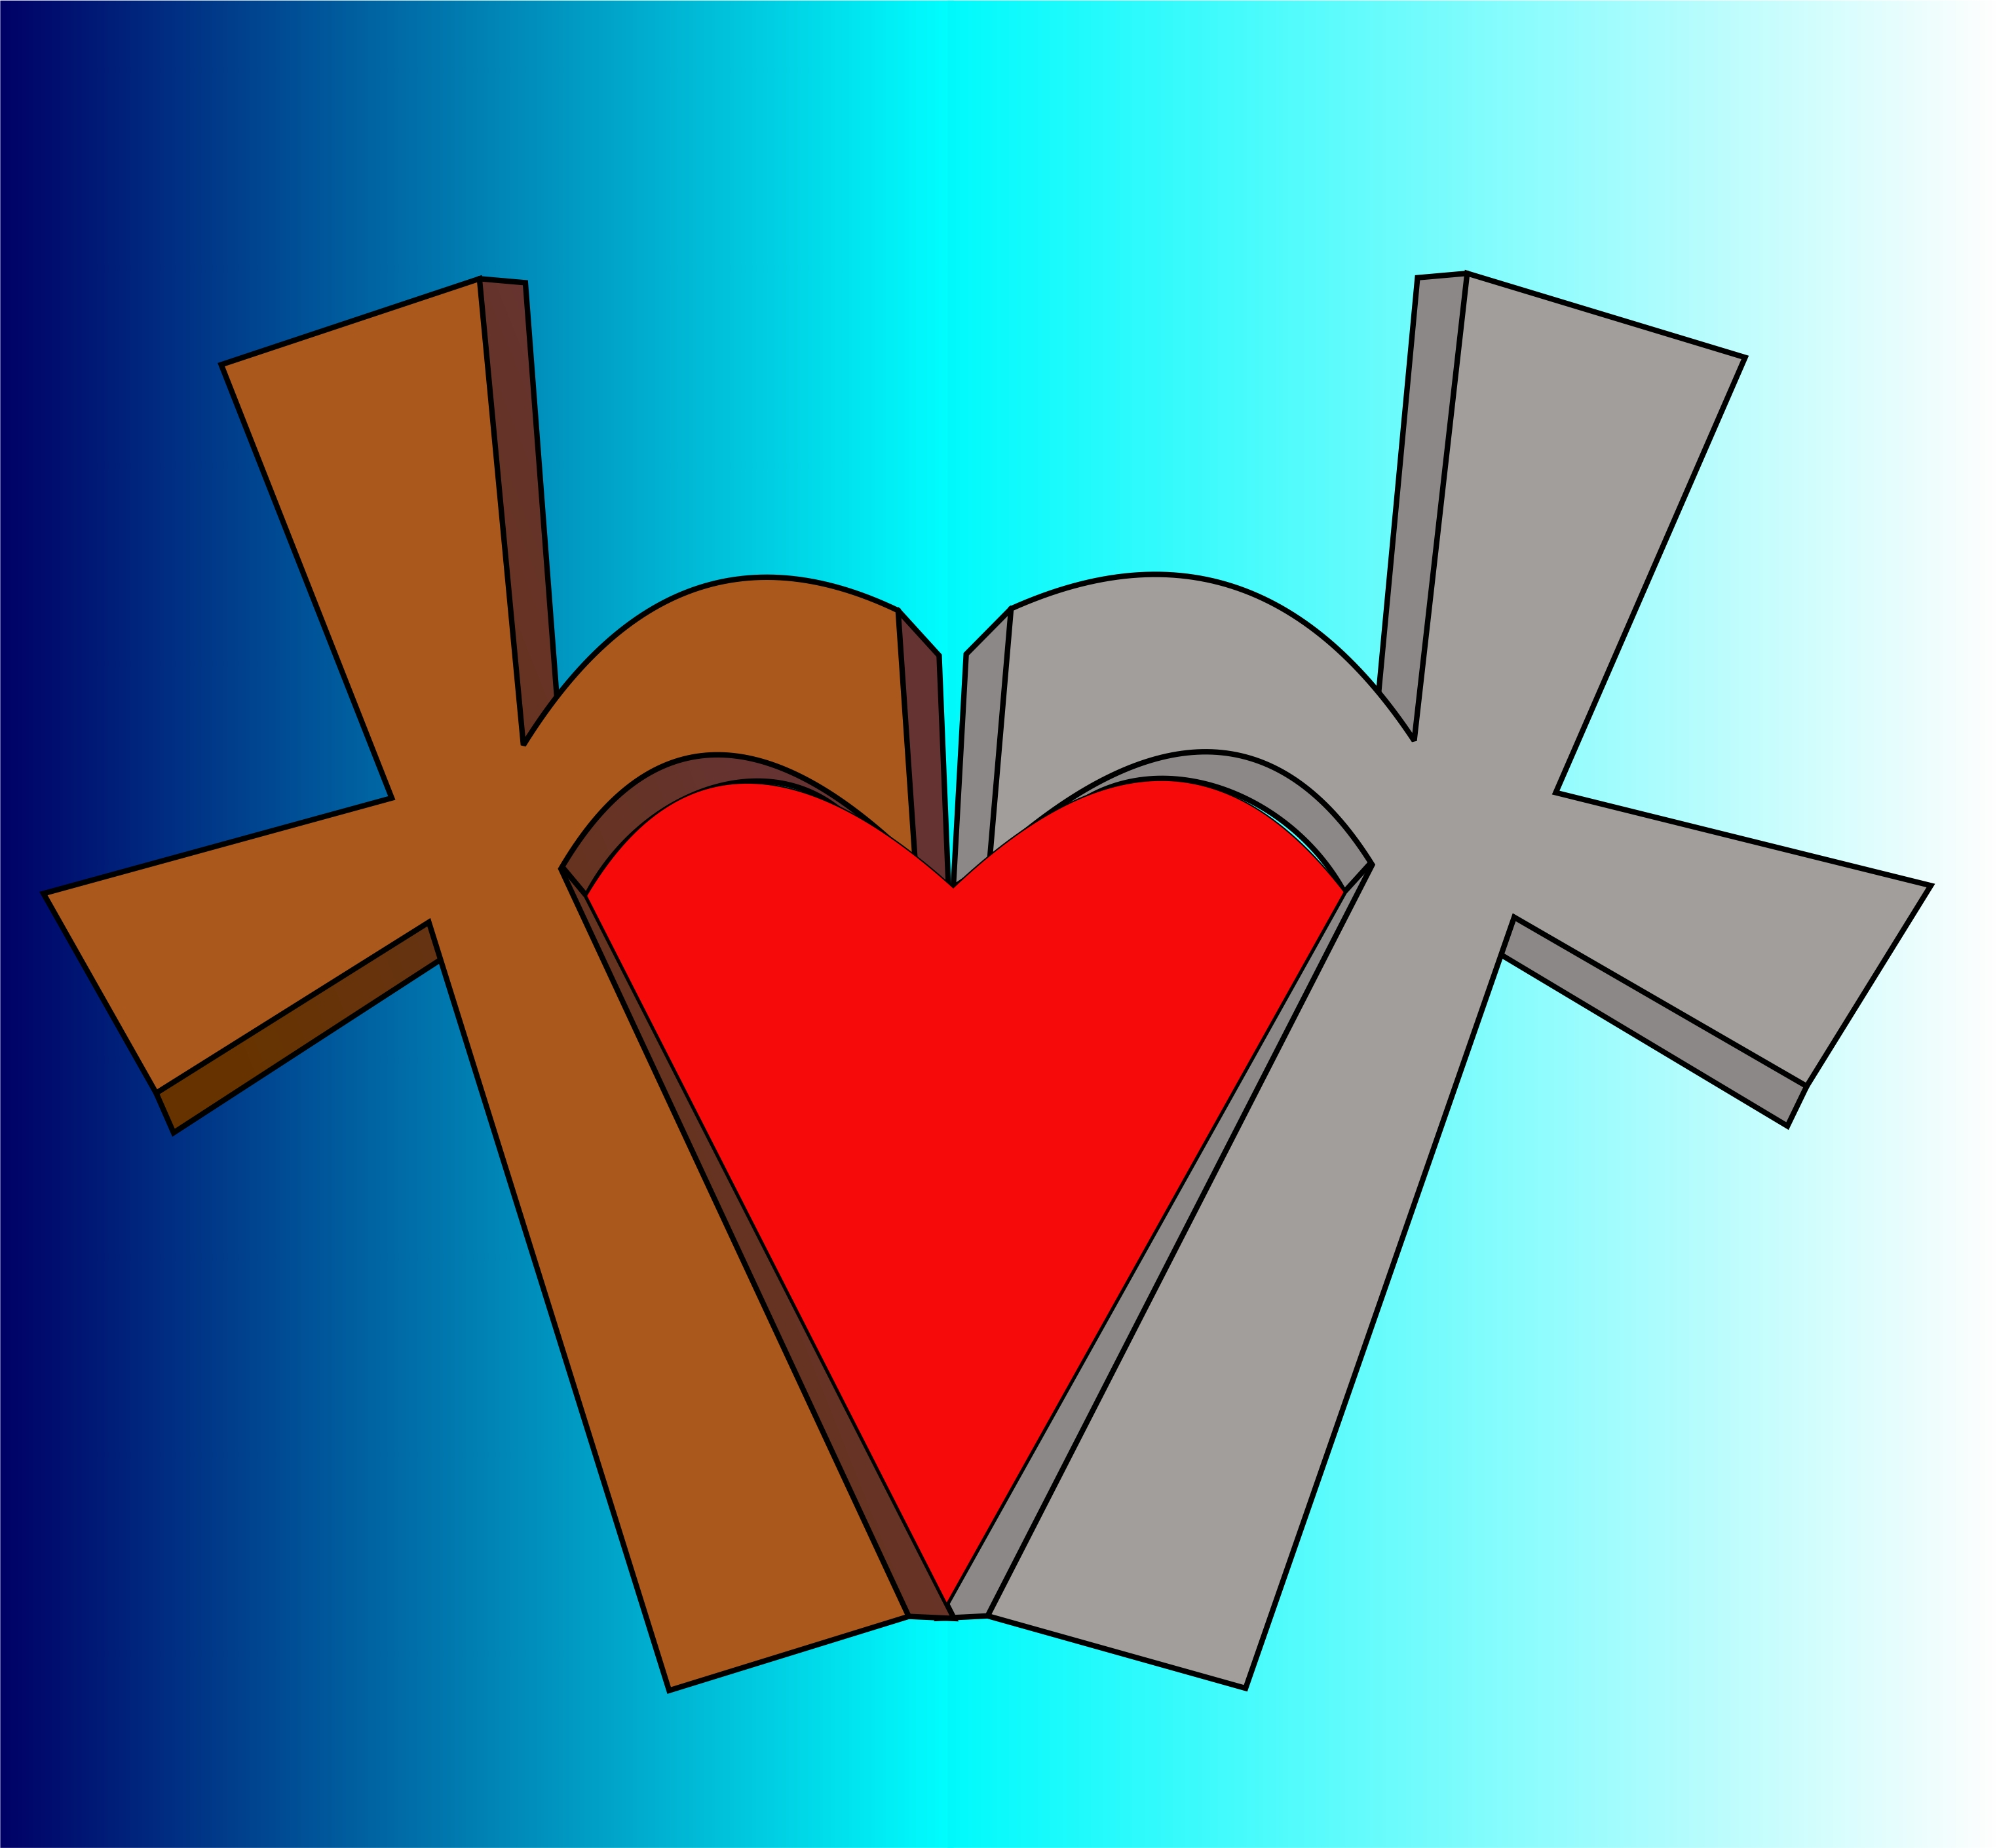 God s will and my inadequacy clipart image free Proverbs 3:5 | CROSS-BAT SHOT image free